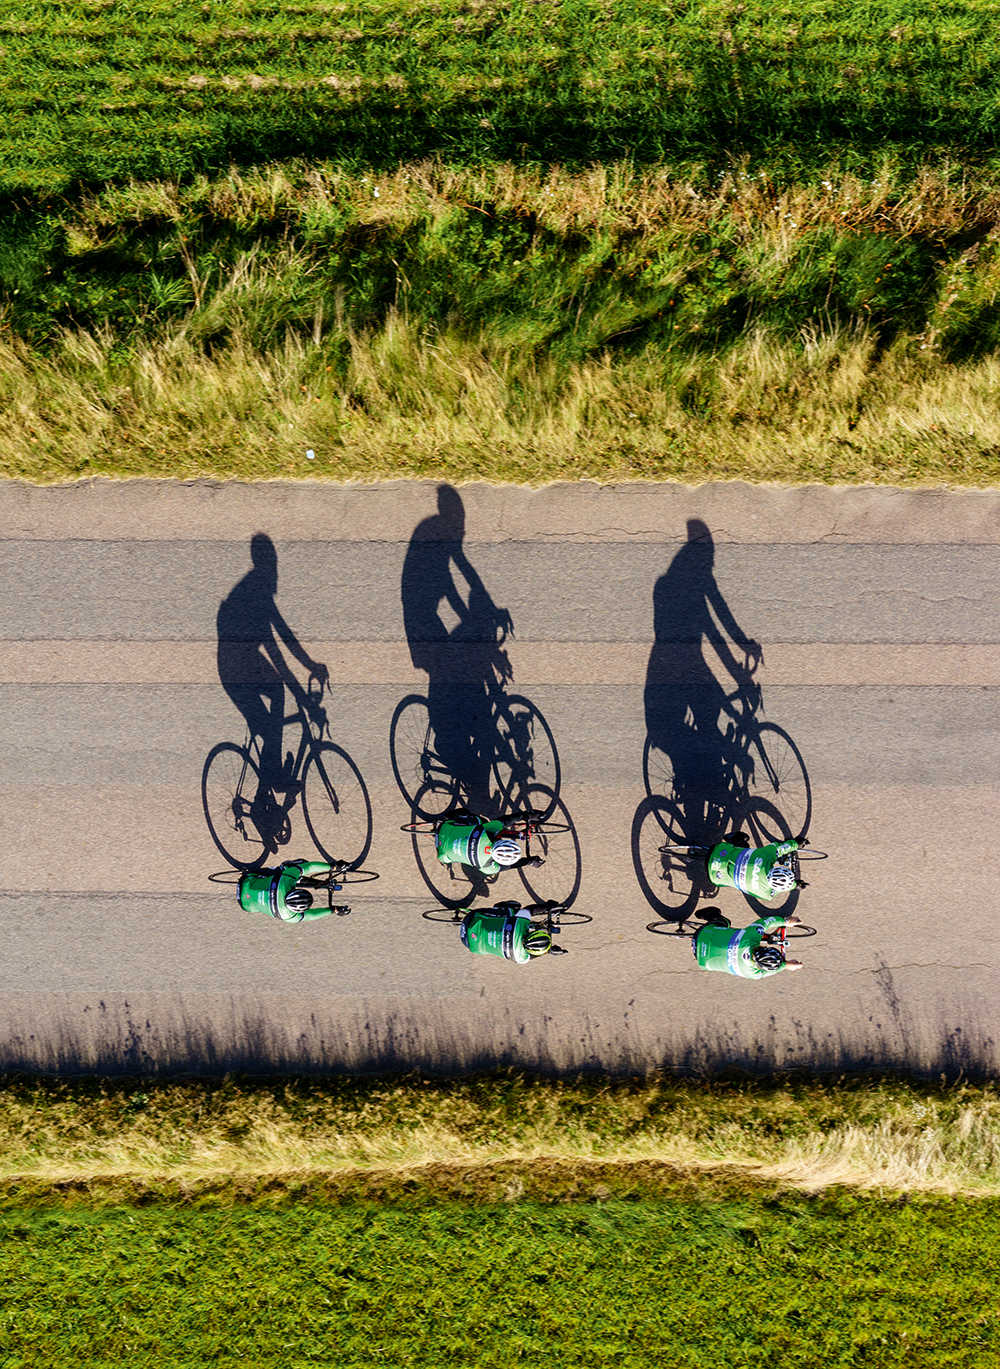 Anders_Andersson-cyclists.jpg